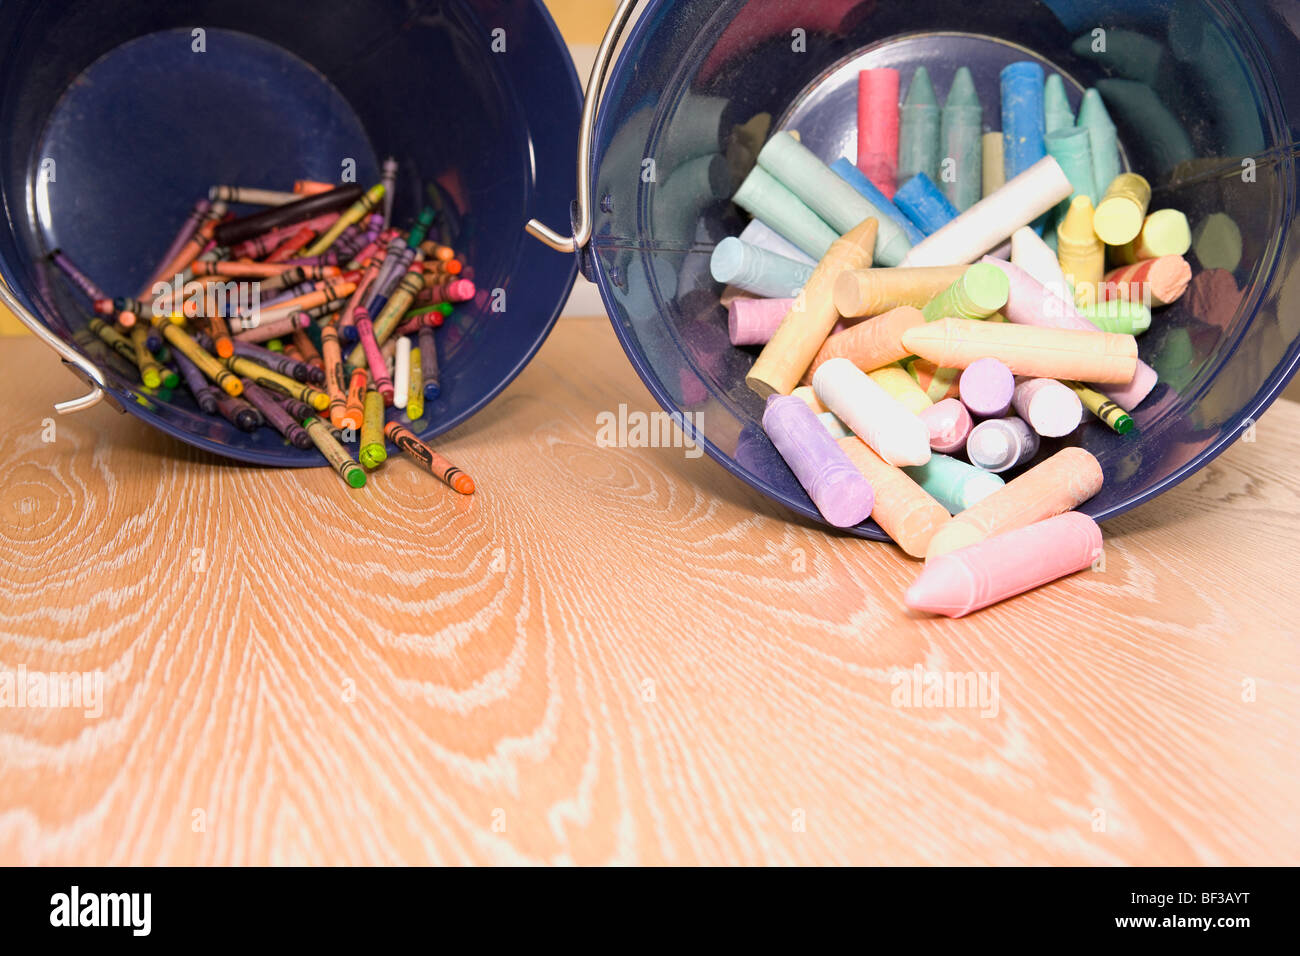 Crayons spilling out from containers - Stock Image